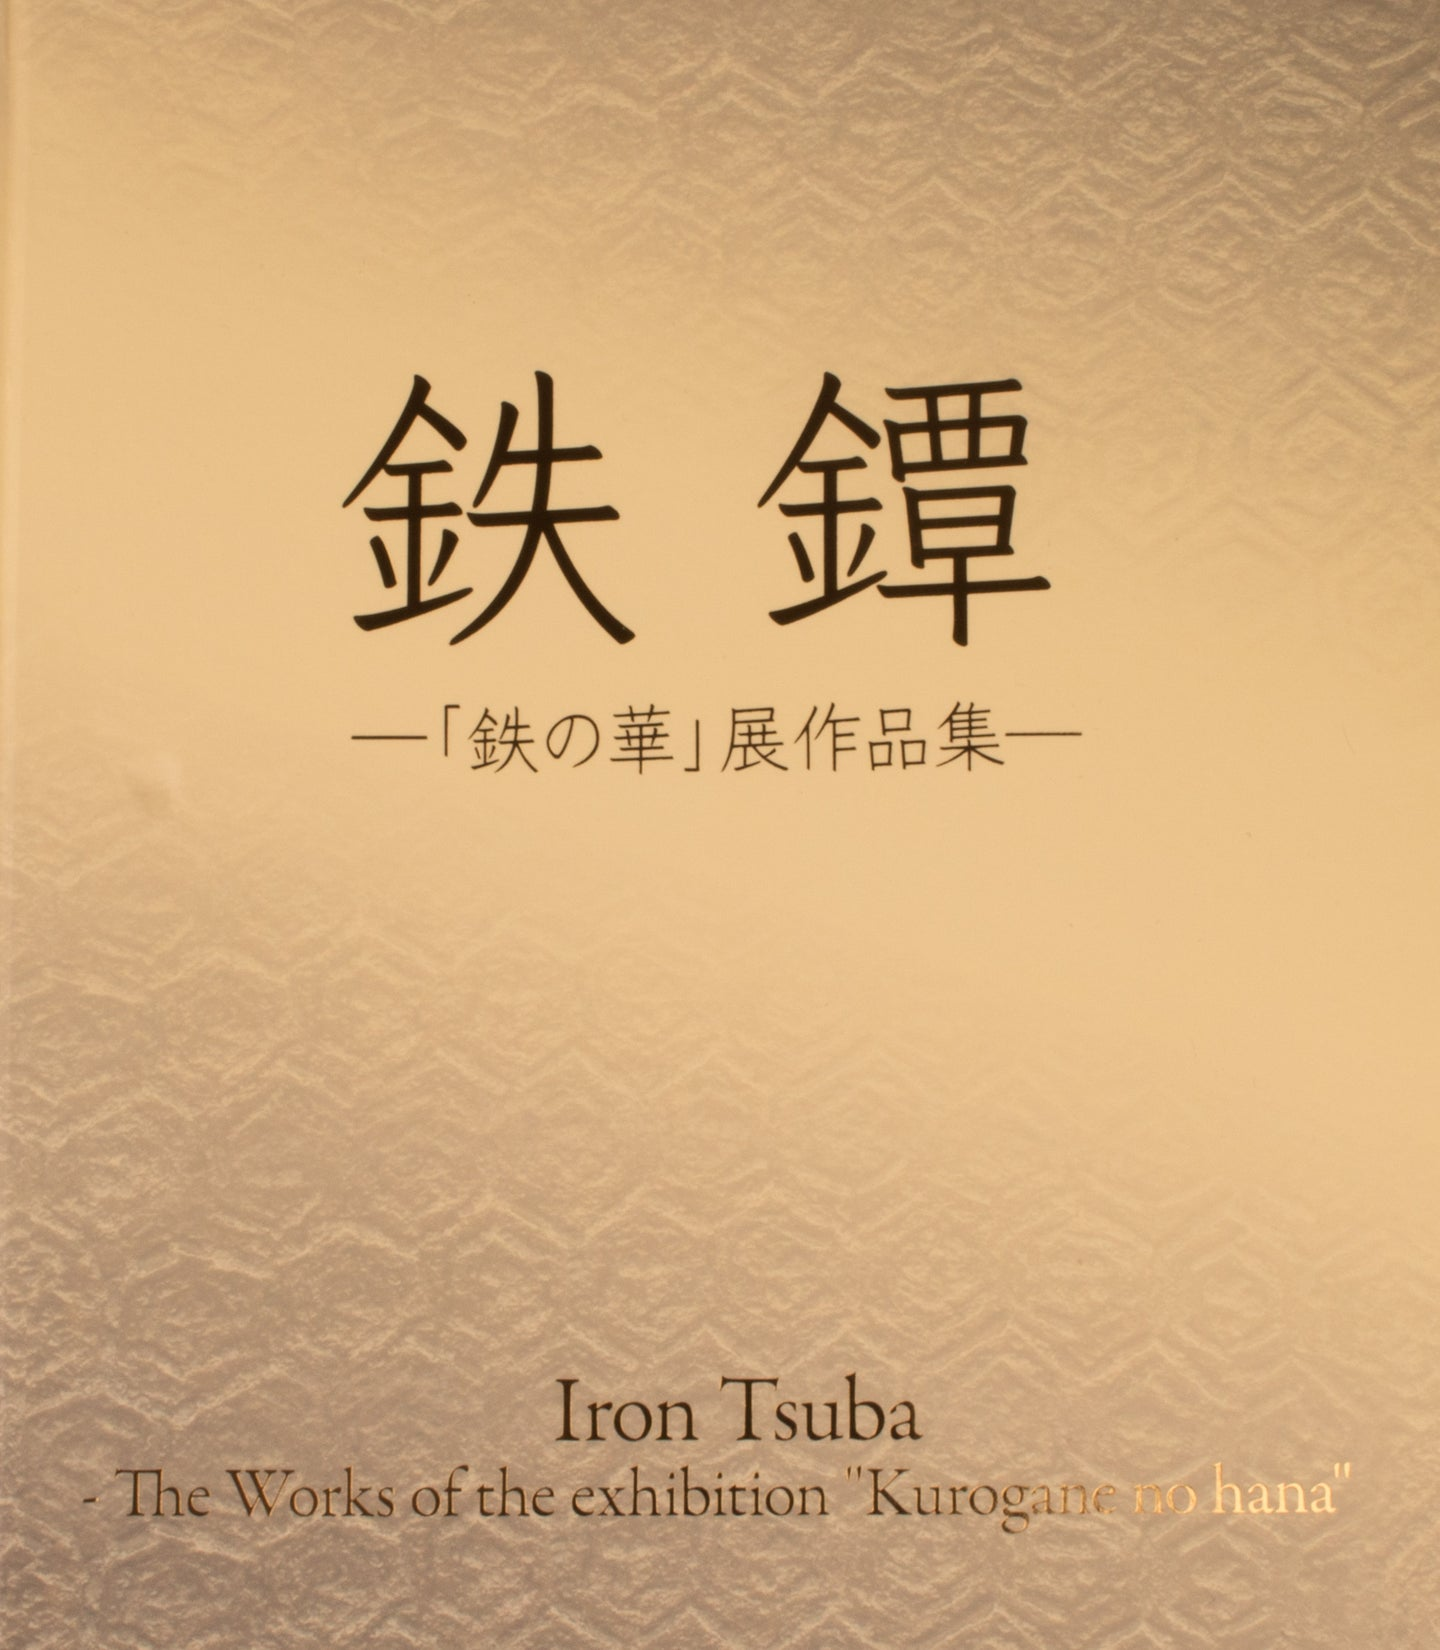 Iron Tsuba - The Works of the exhibition